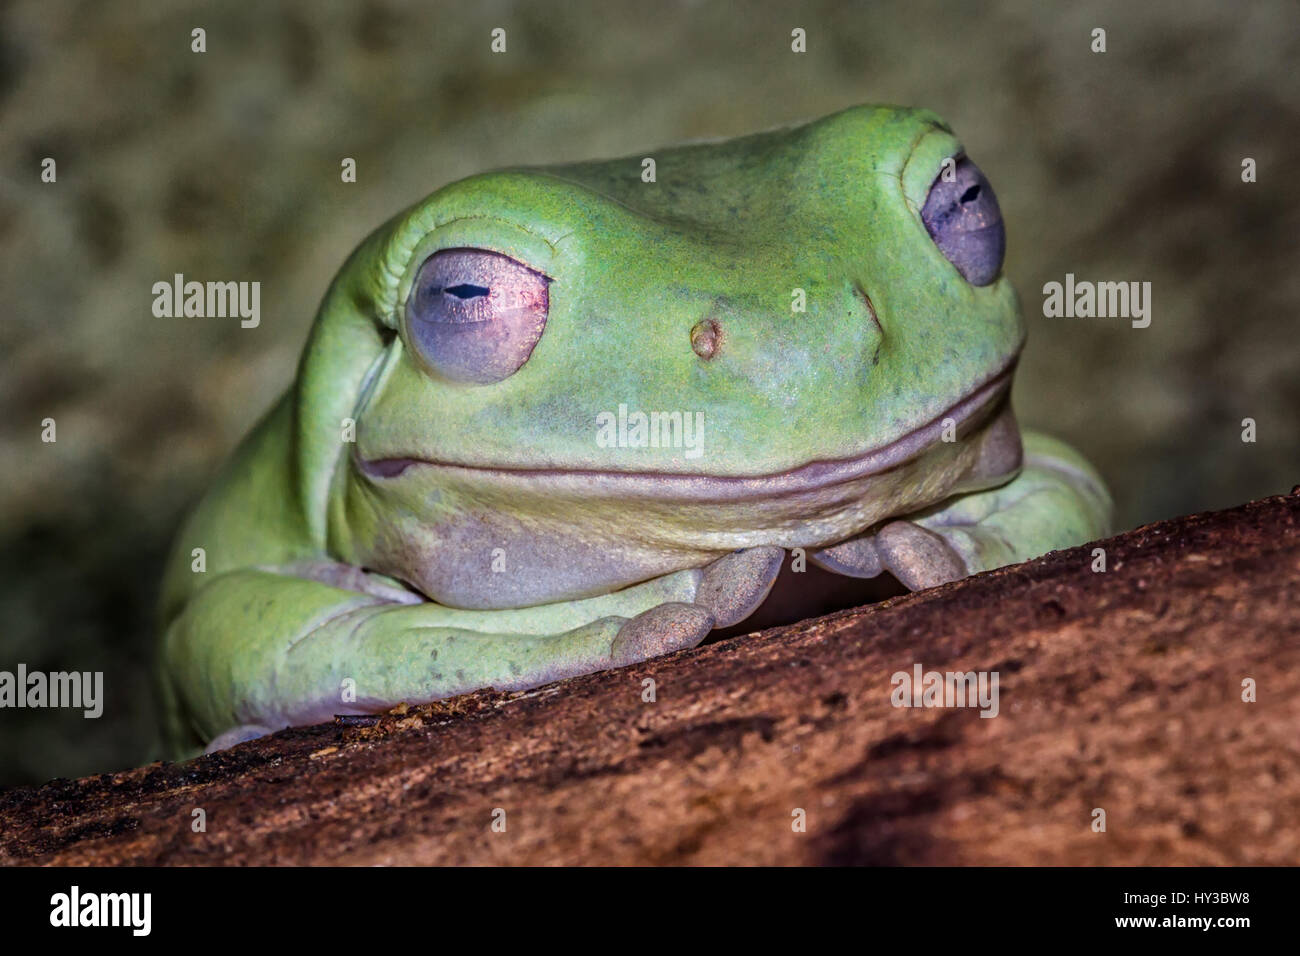 very close up image of the head of a whites tree frog resting on a log showing eye detail and appearing to be smiling Stock Photo